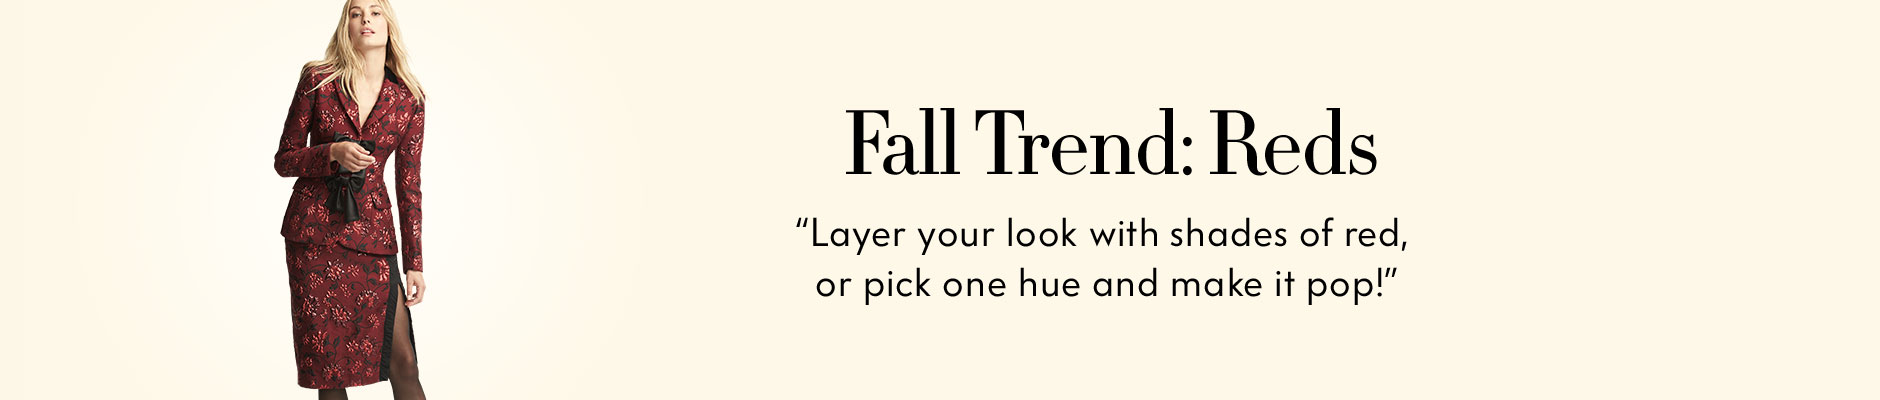 Fall Trend: Reds - Layer your look with shades of red, or pick one hue and make it pop!